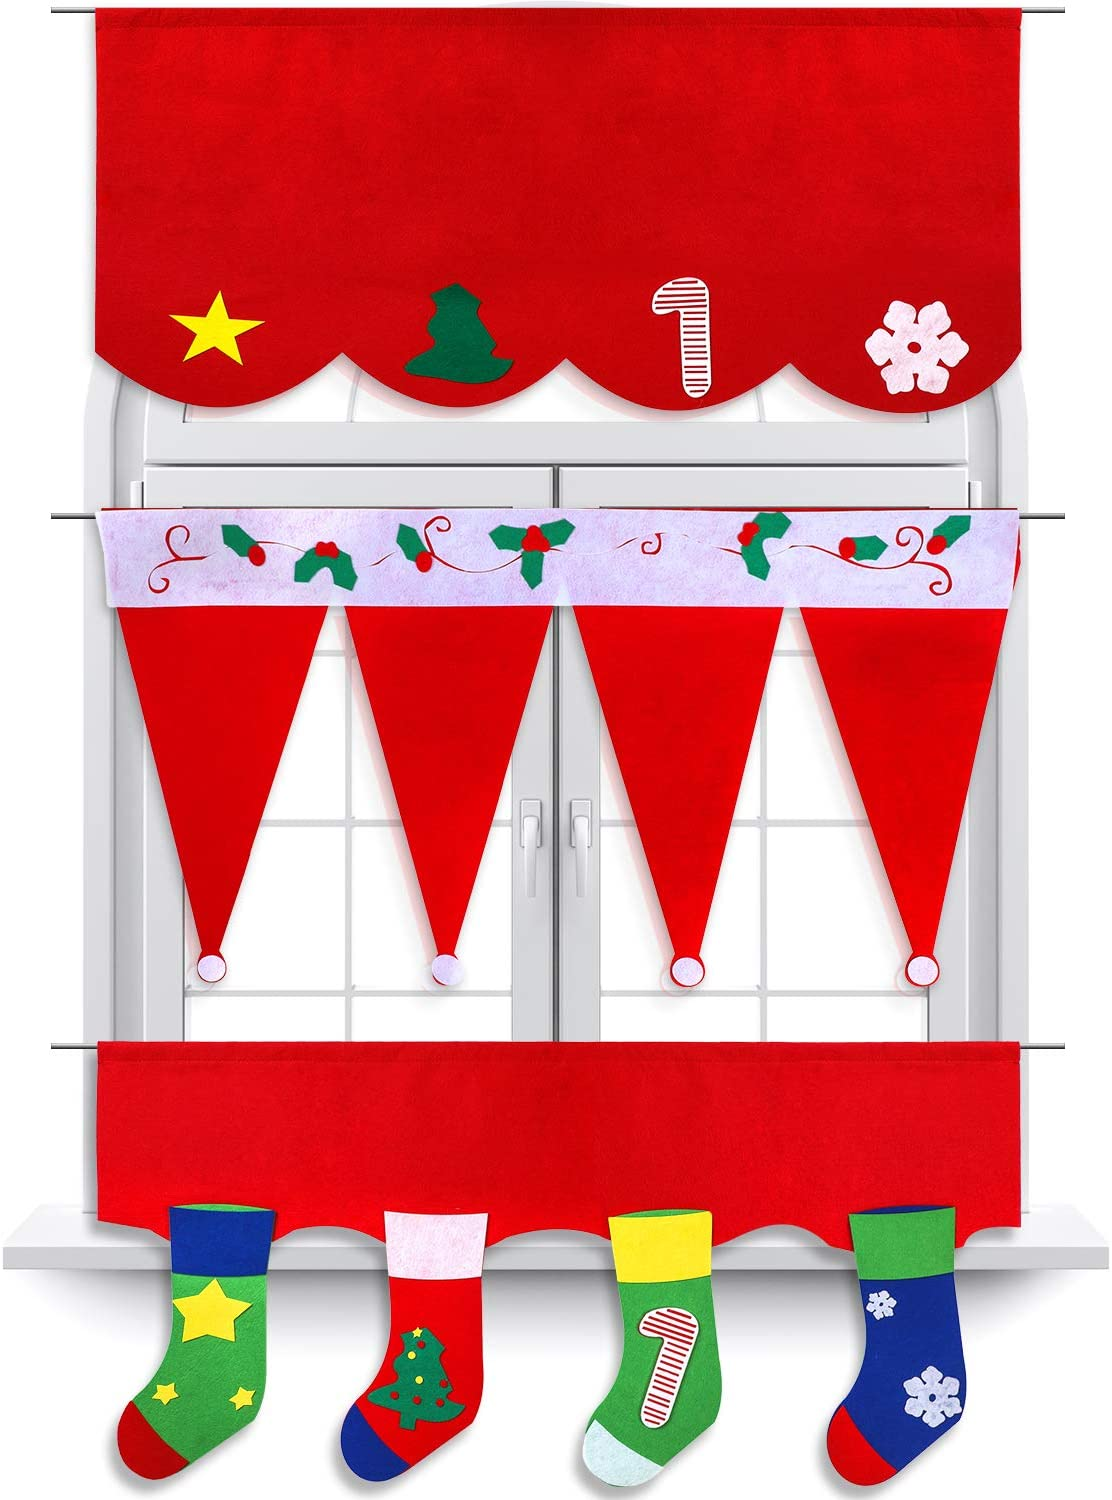 Boao 3 Packs Christmas Curtain Valances Red Kitchen Window Valances Santa Hat Curtain Valance for Christmas Home Kitchen Decoration, 3 Styles